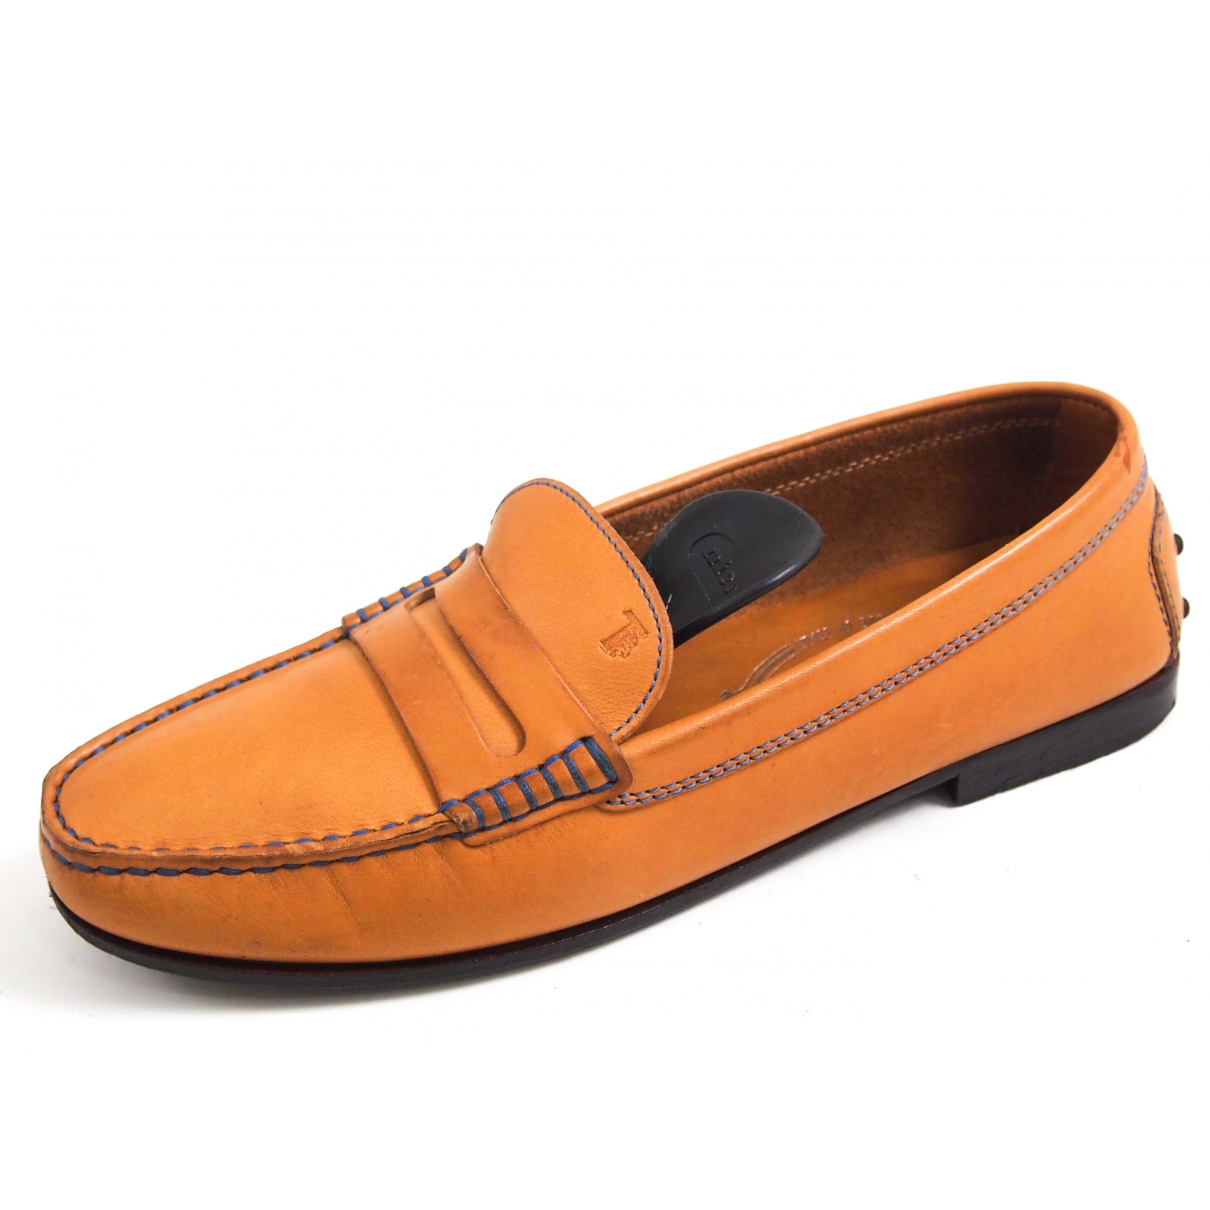 Tod's \N Orange Leather Flats for Women 36 EU